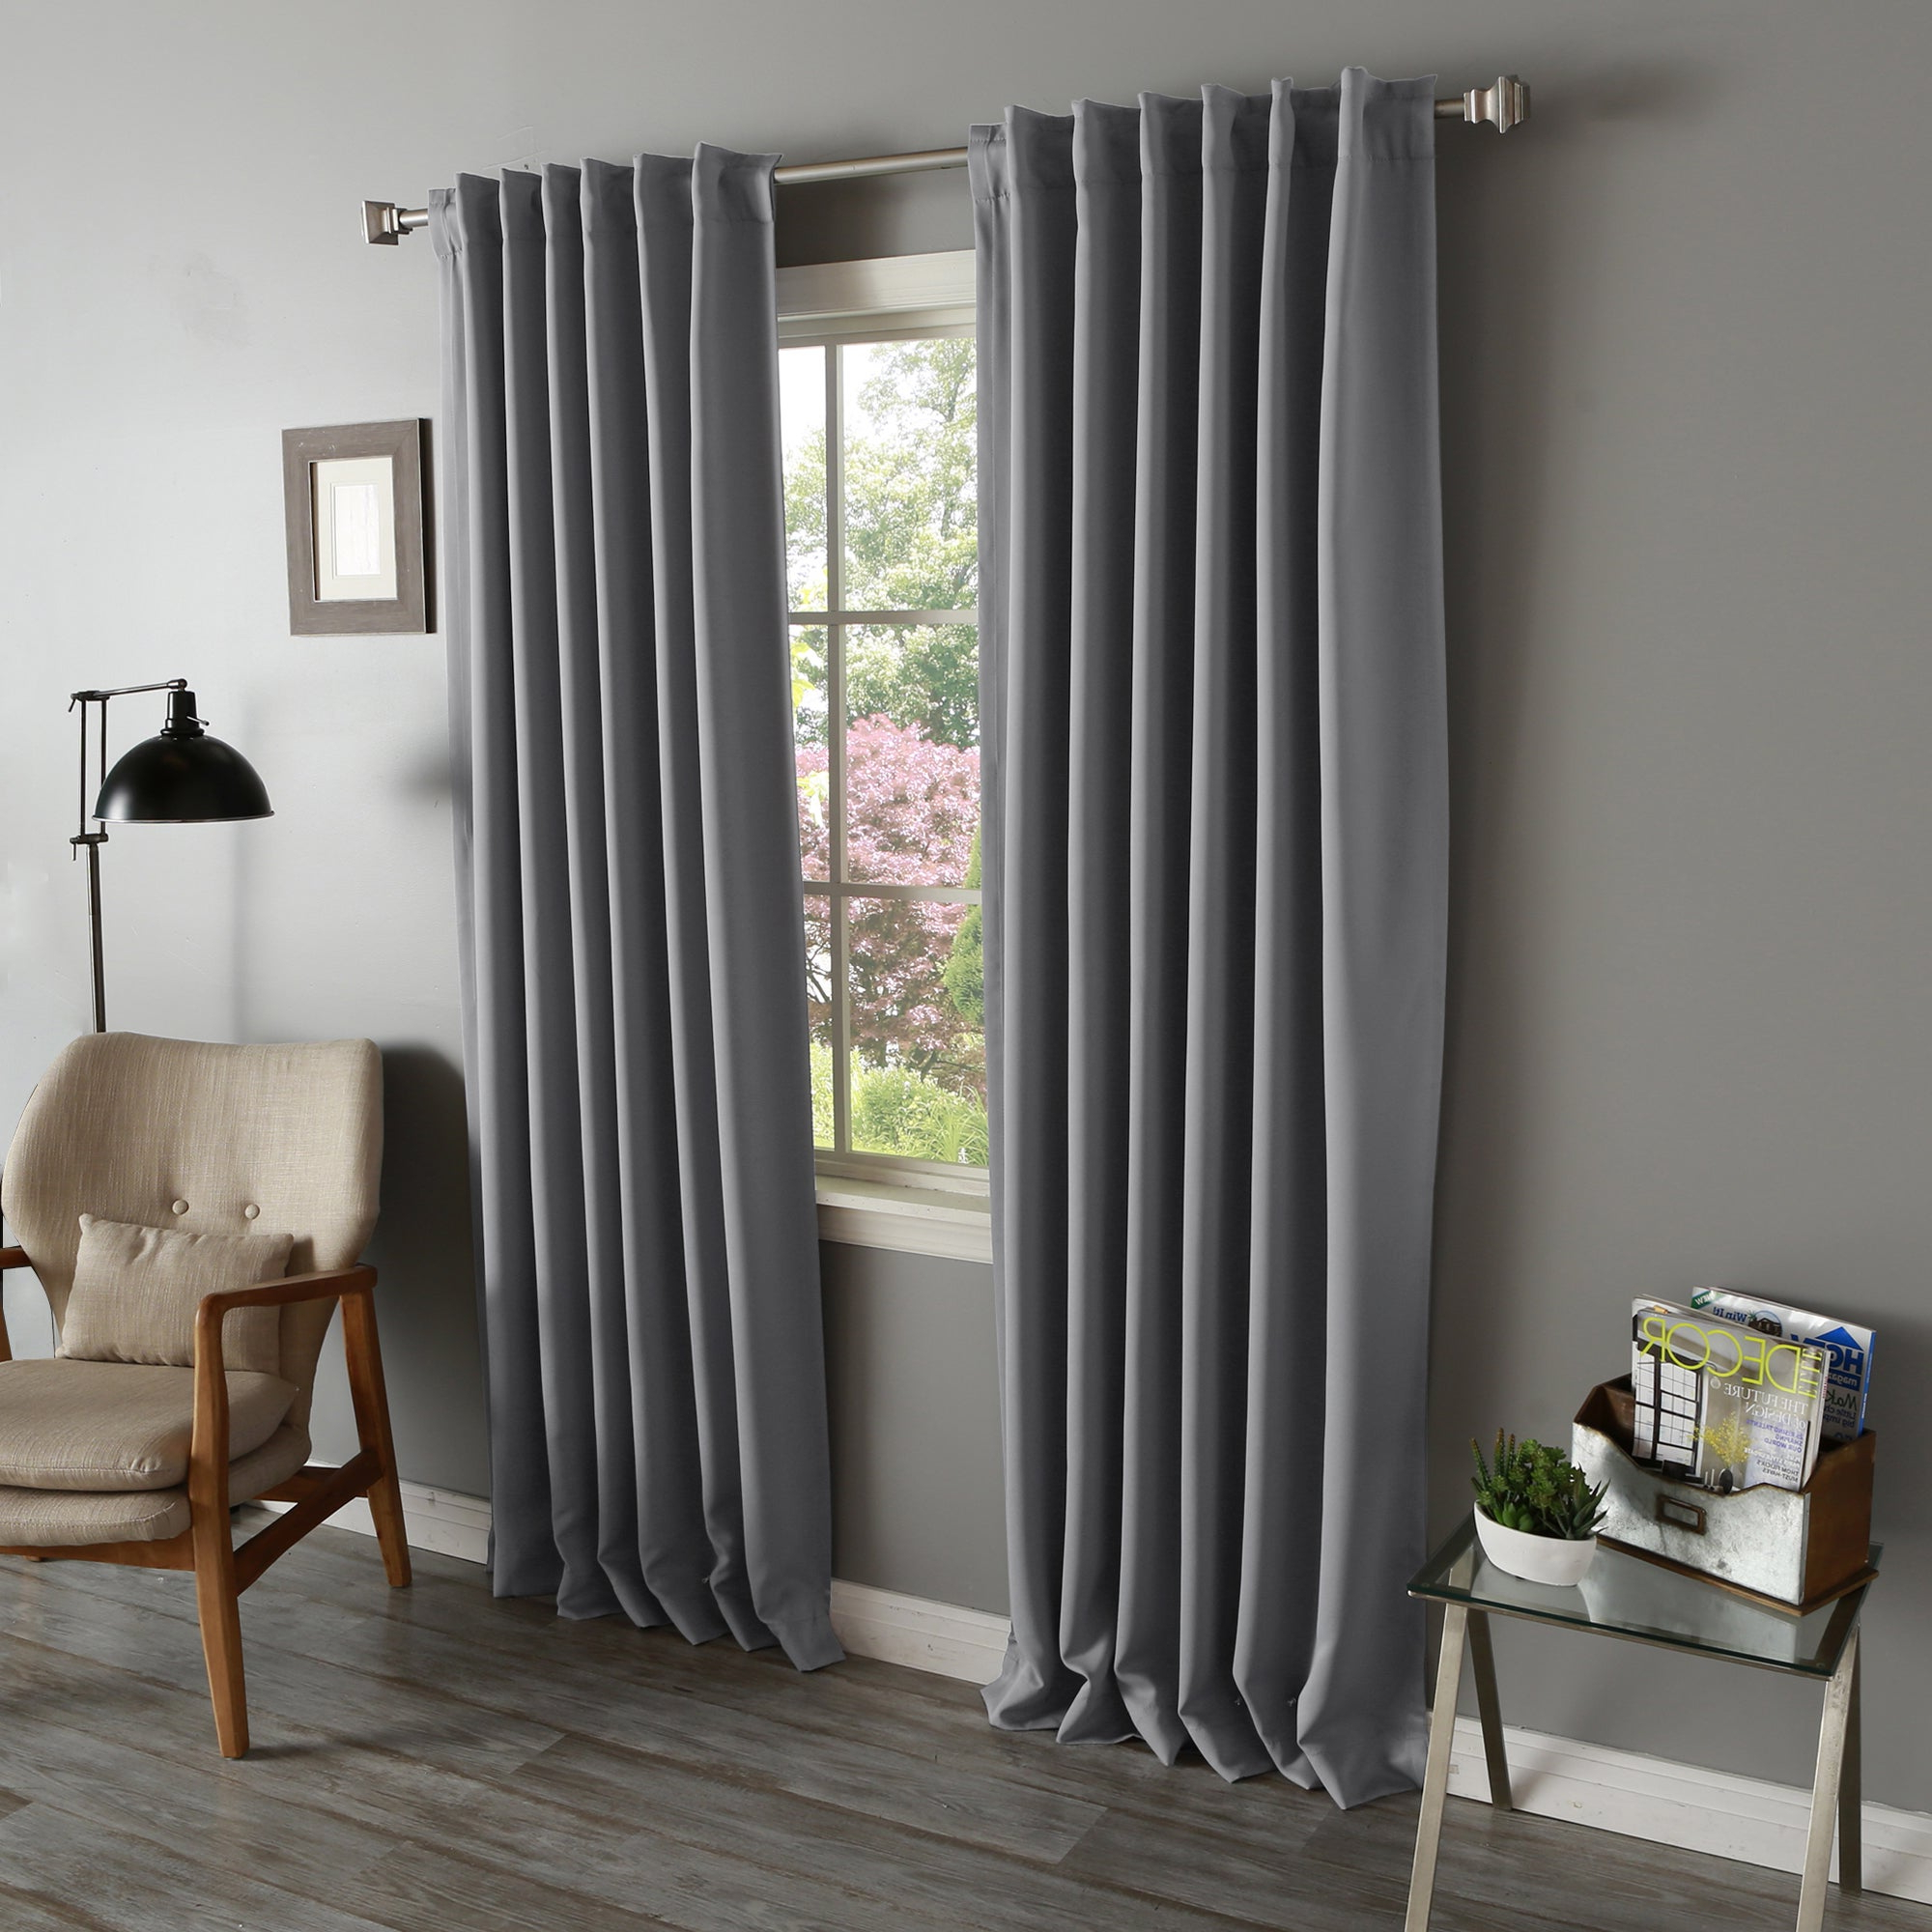 Best And Newest Aurora Home Solid Insulated Thermal Blackout Long Length Curtain Panel Pair With Solid Insulated Thermal Blackout Long Length Curtain Panel Pairs (View 3 of 20)